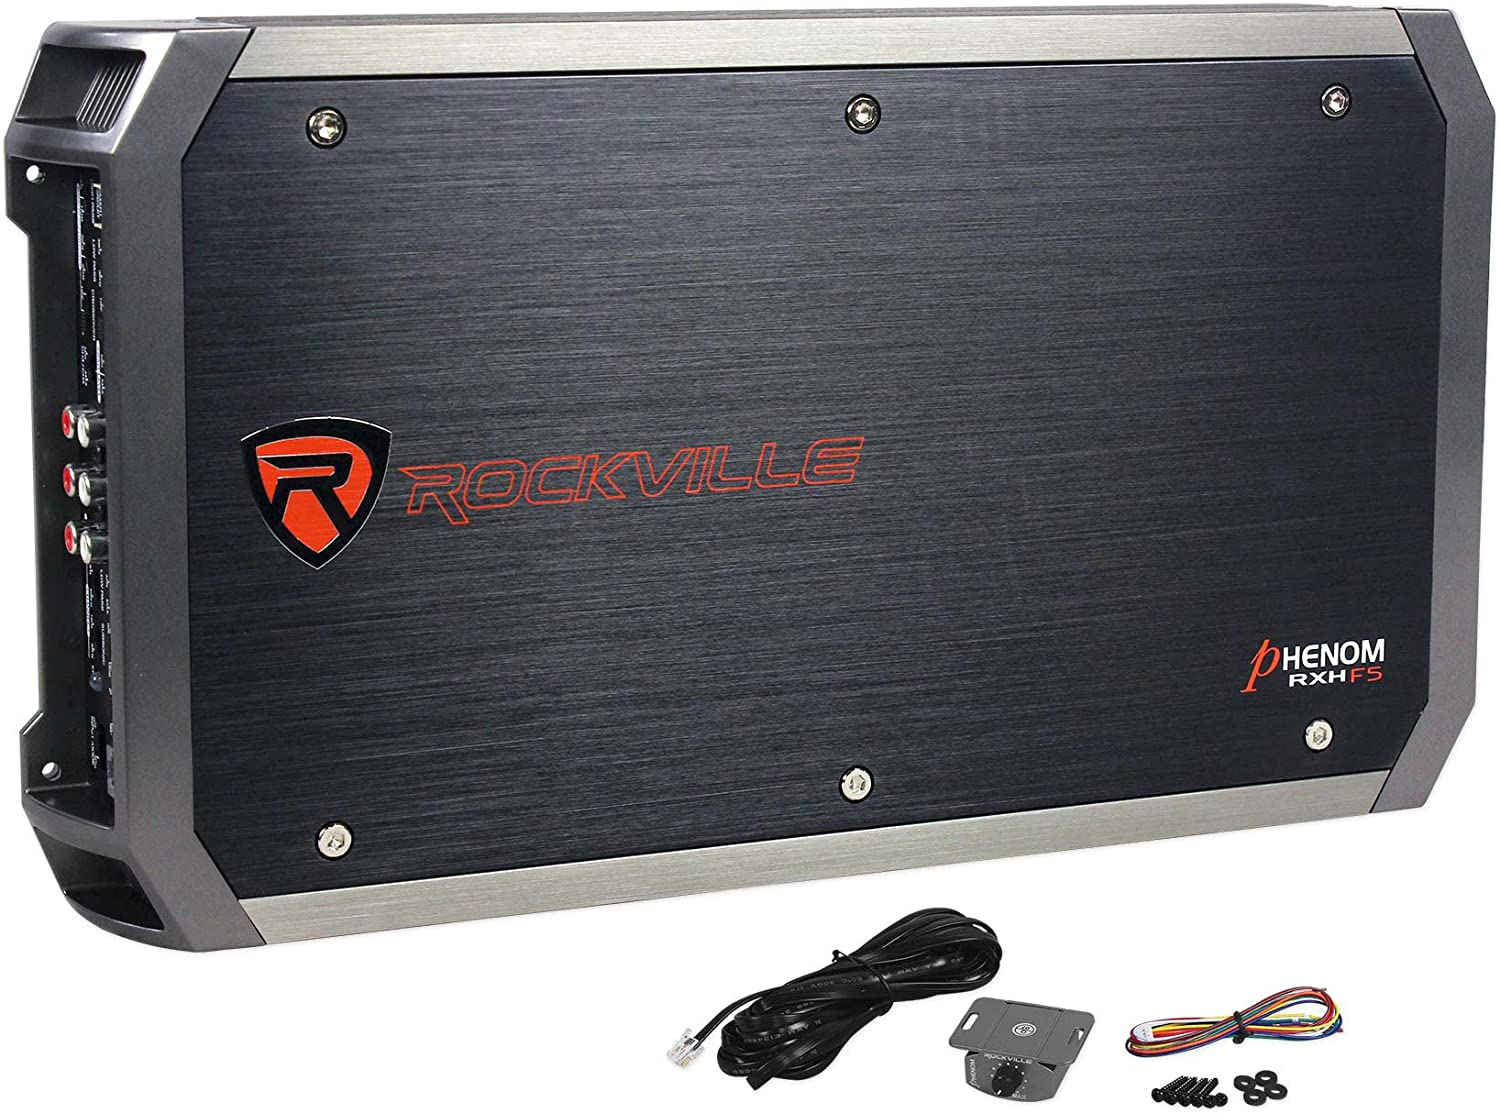 Rockville RXH 3200 Watt